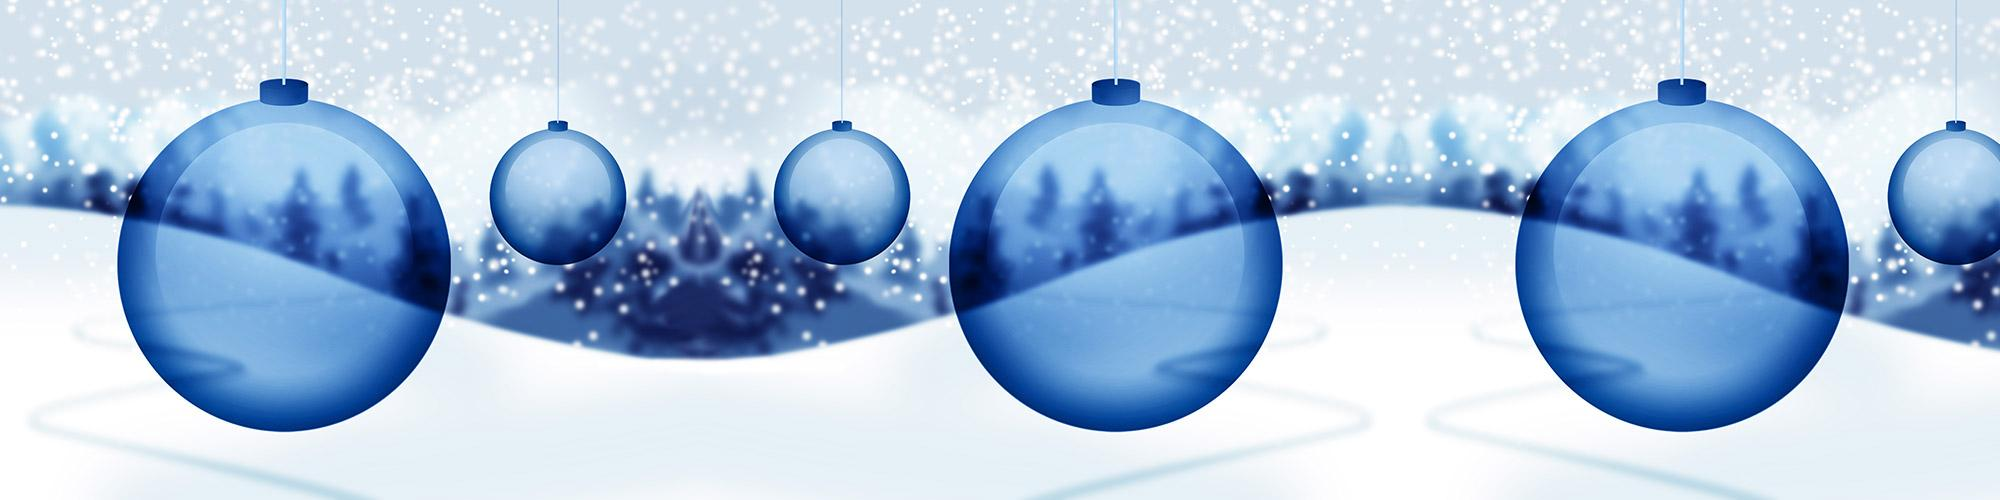 Christmas ornaments and winter landscape